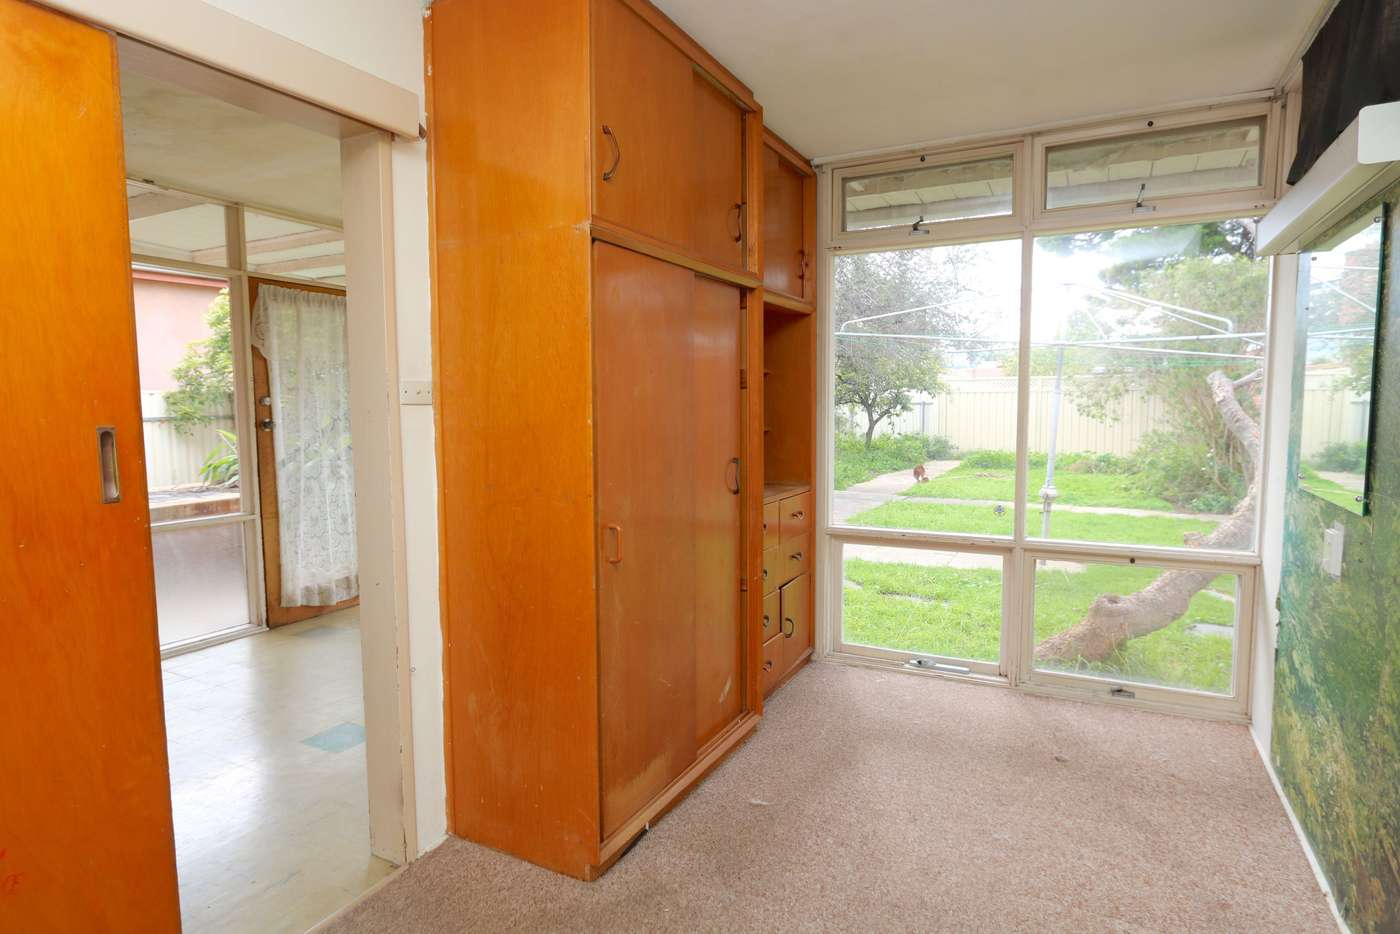 Seventh view of Homely house listing, 24 Glengarry Street, Woodville South SA 5011